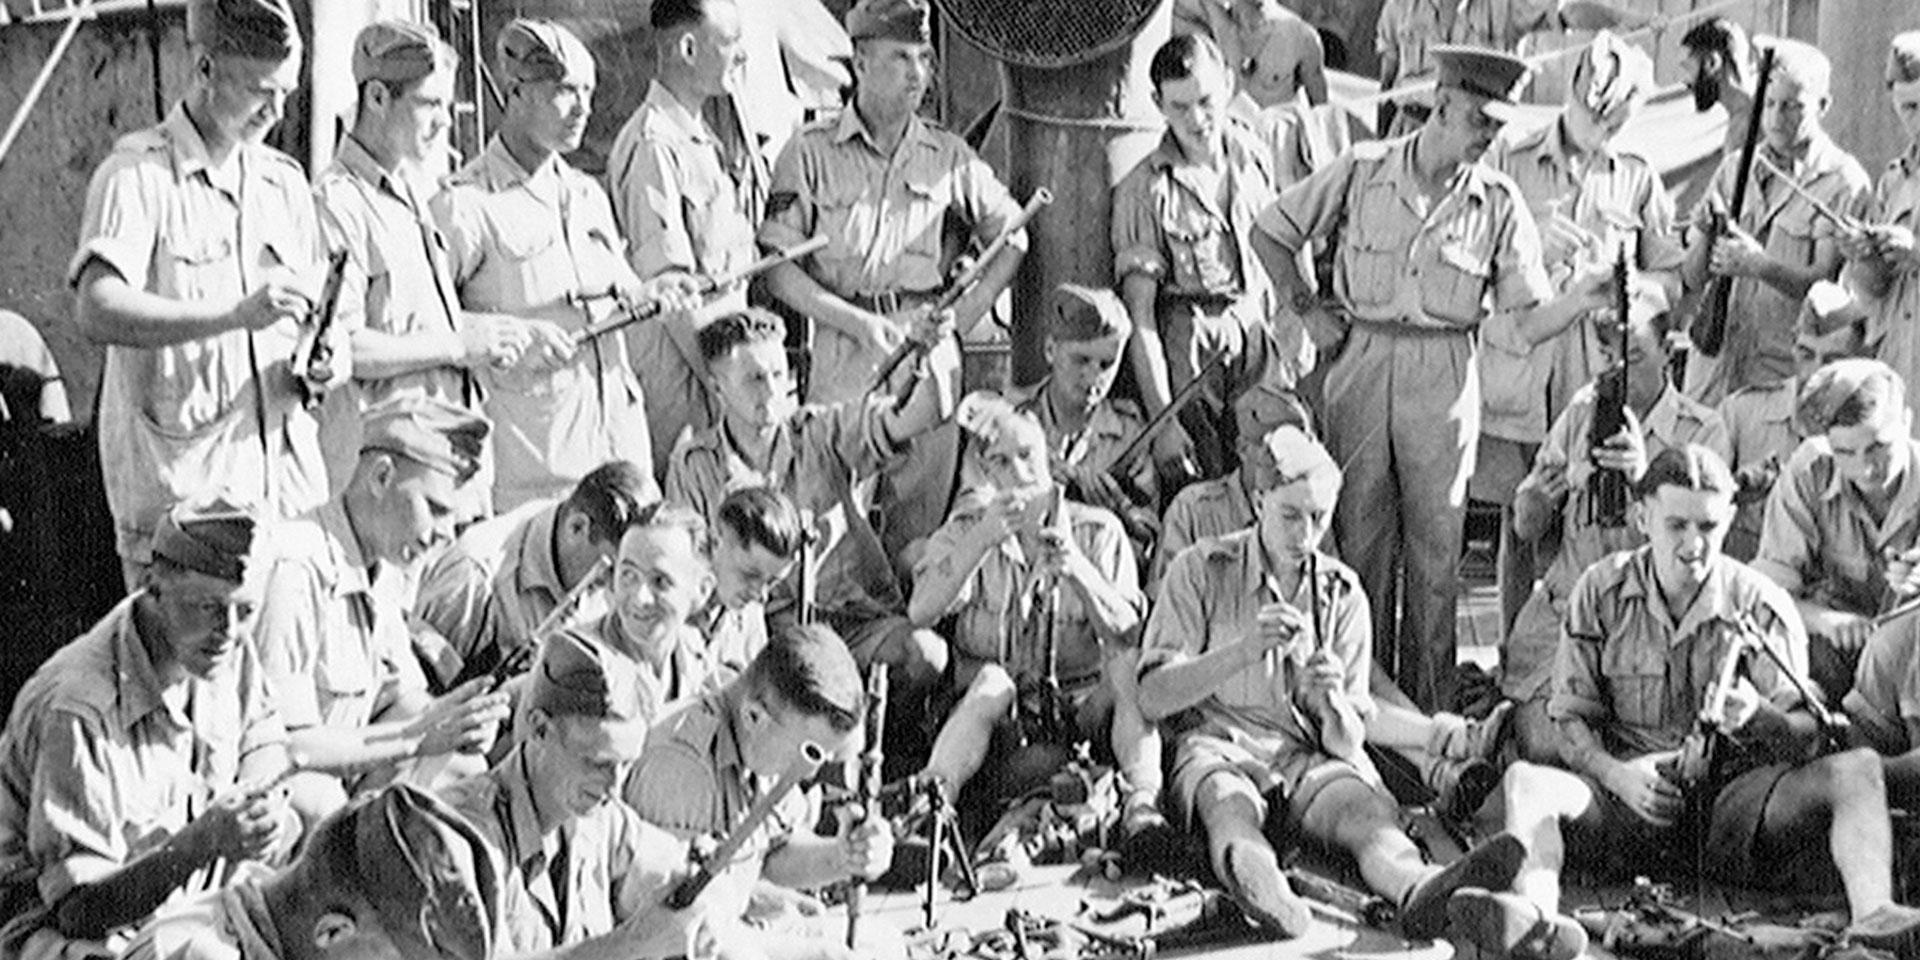 1st Battalion The Durham Light Infantry cleaning weapons on board the 'Winchester Castle', July 1943